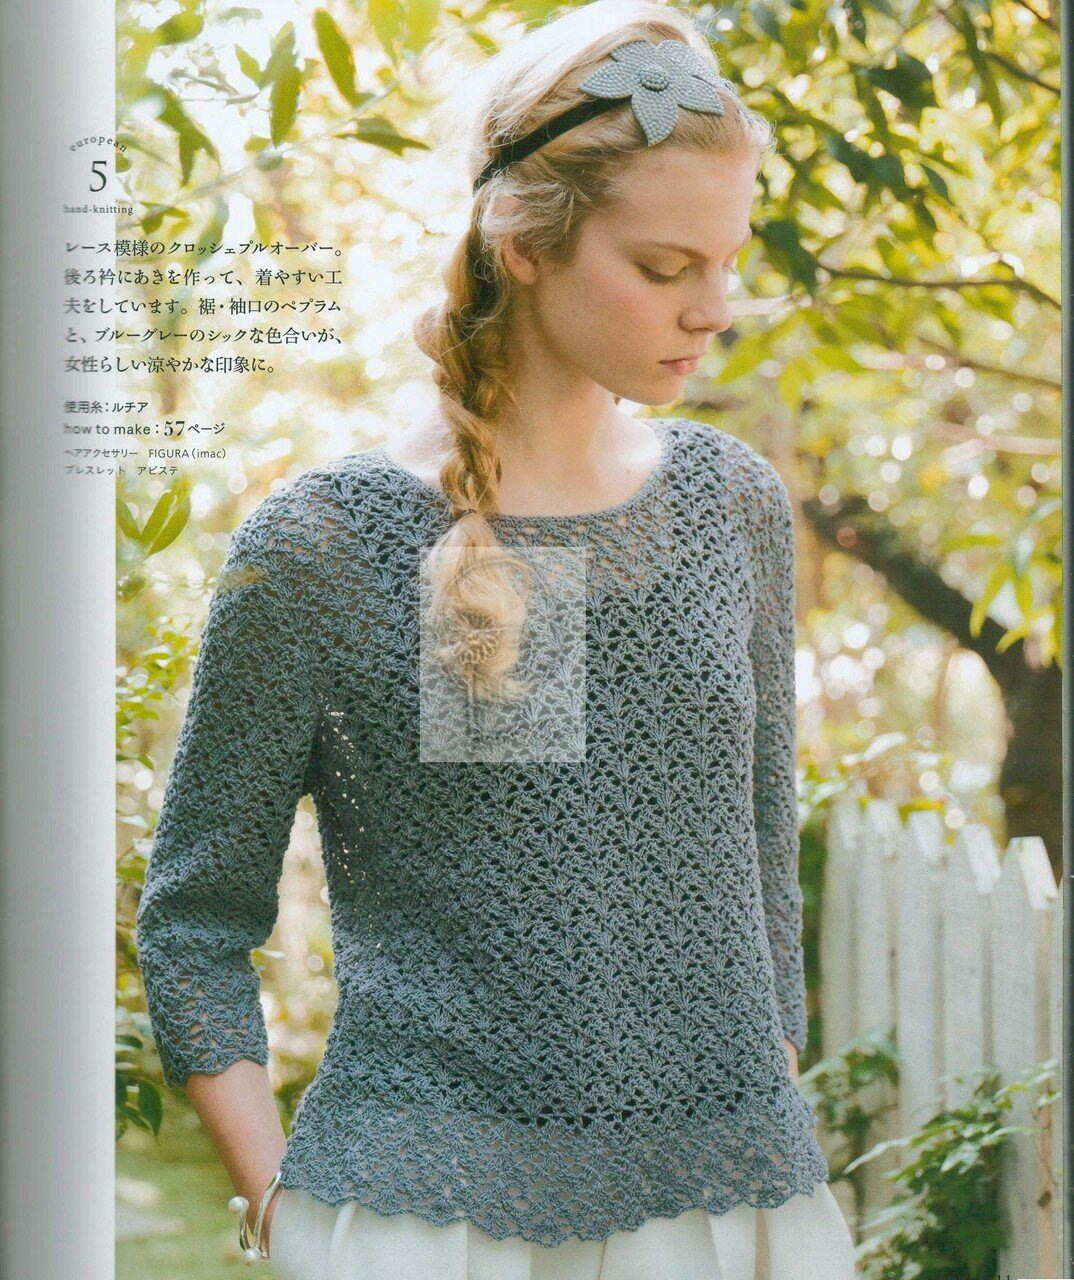 【转载】LETS KNIT SERIES NV80536 2017 - 荷塘秀色 - 茶之韵